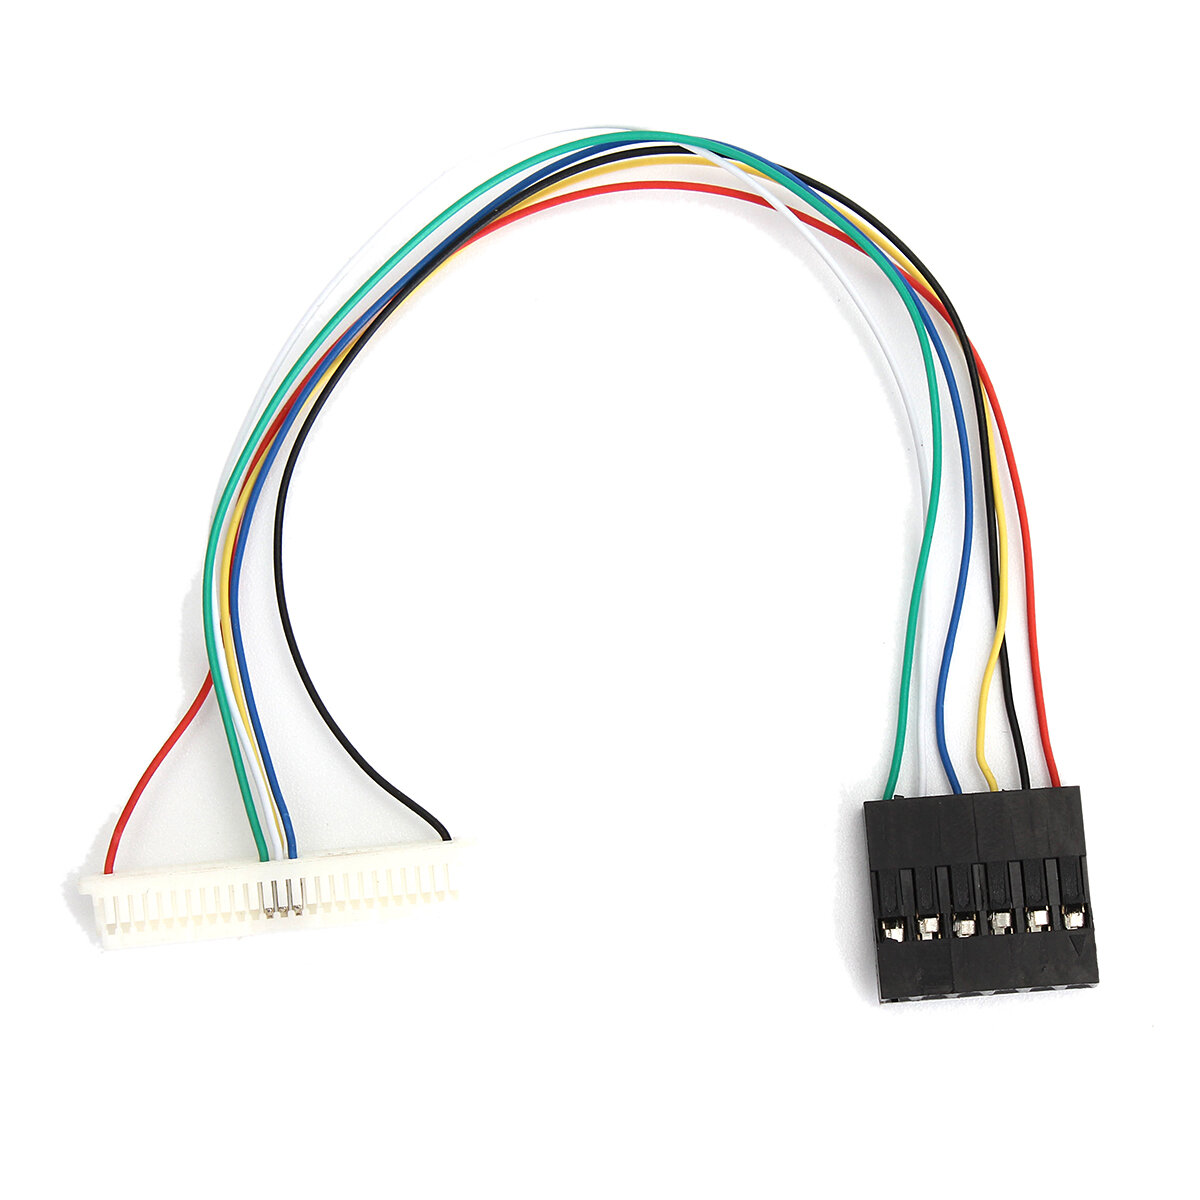 Nand-X Flasher naar Coolrunner Cable Brush Pulse Line Wire Tool voor XBOX 360